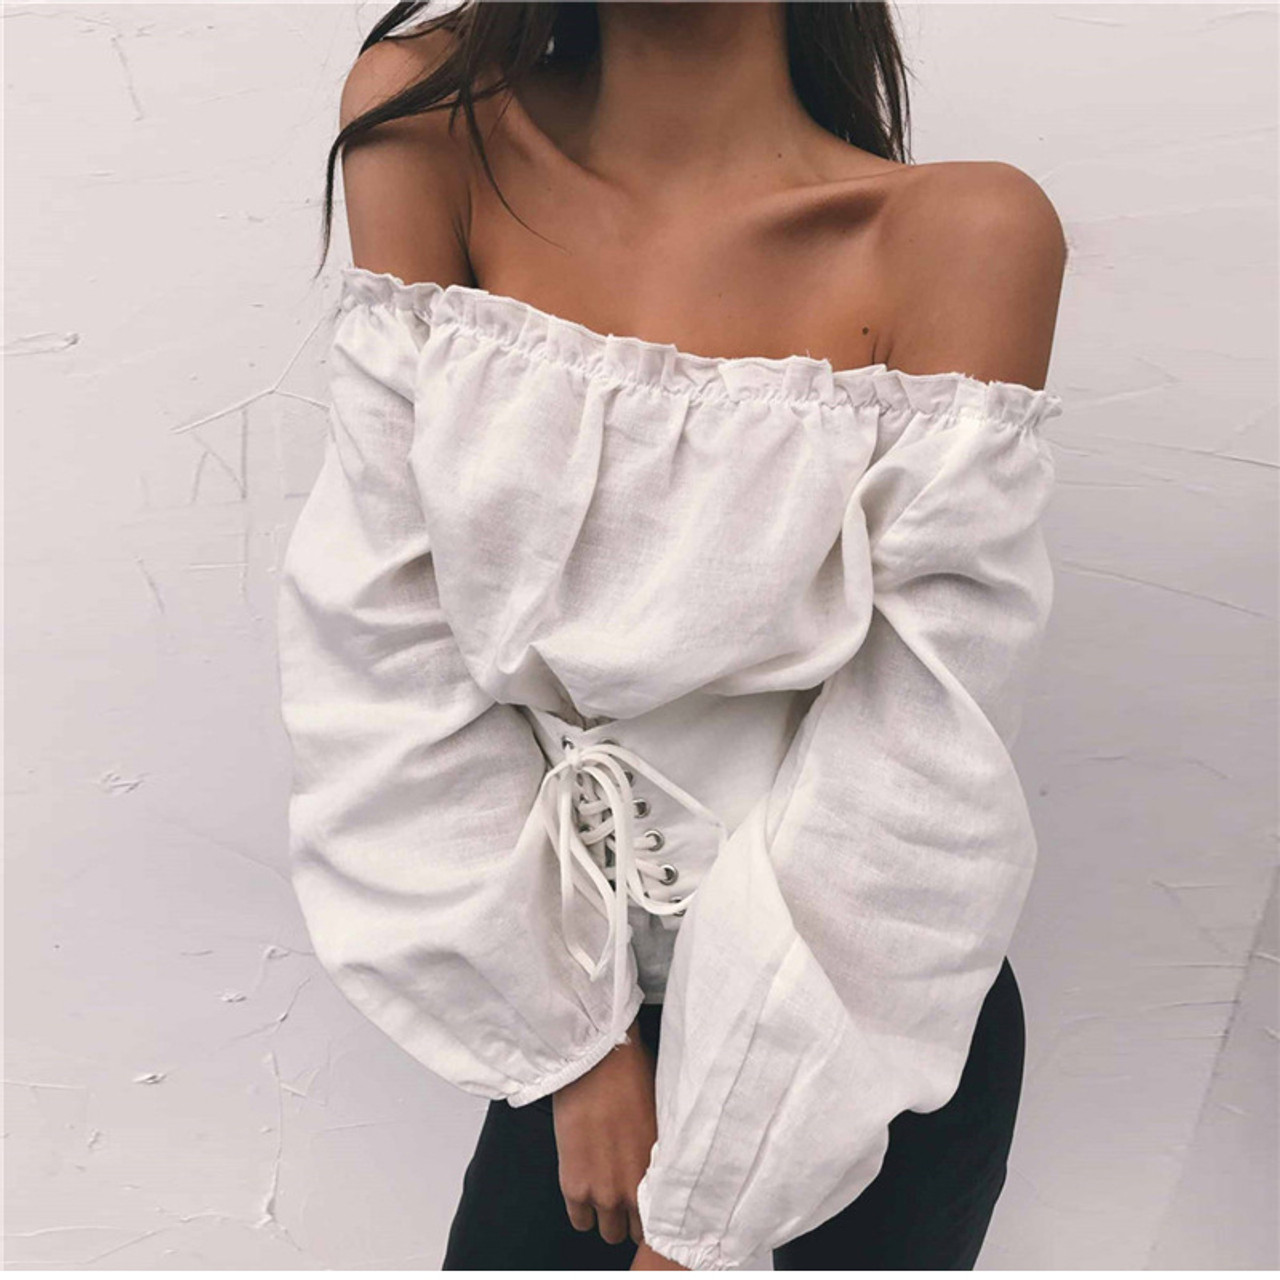 688216d02 Off Shoulder Sexy Women Long Sleeve Blouse Shirt Lace Up Female Shirts  Ruffles Autumn Blouses Casual Top